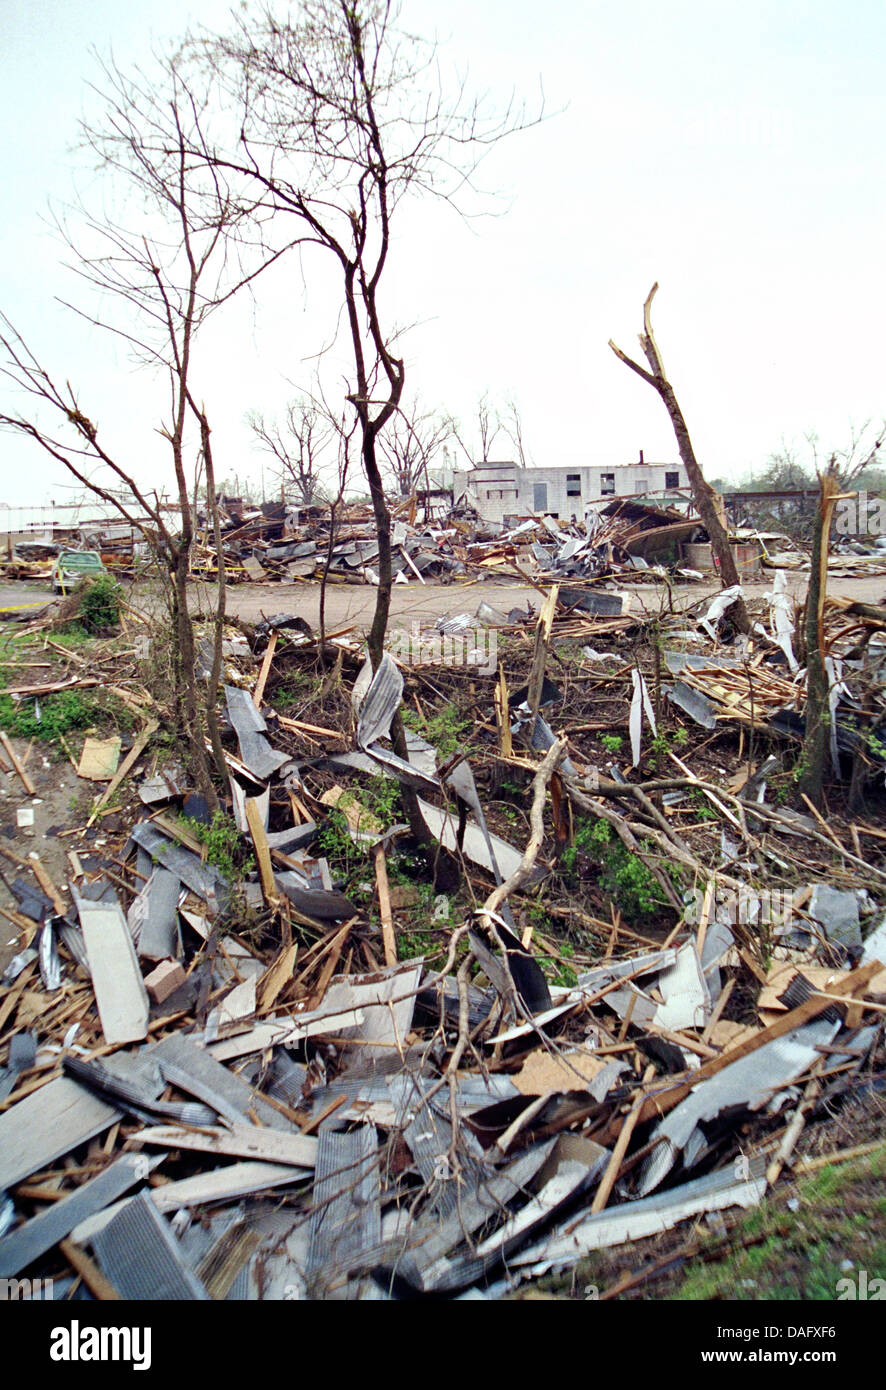 Aftermath of the destruction caused by Hurricane Andrew August 24, 1992 in Dade County, FL. - Stock Image